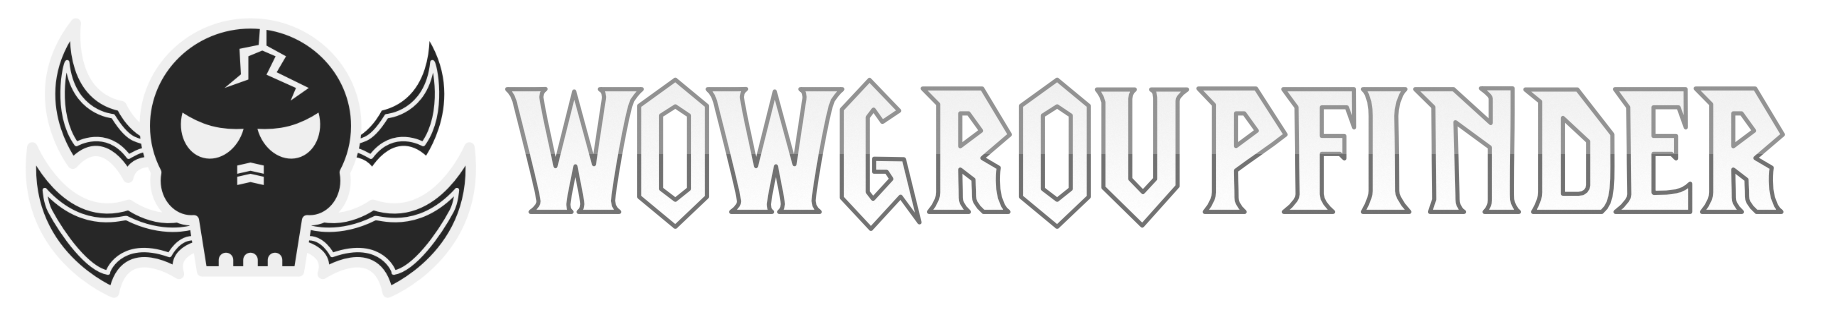 wow group finder logo